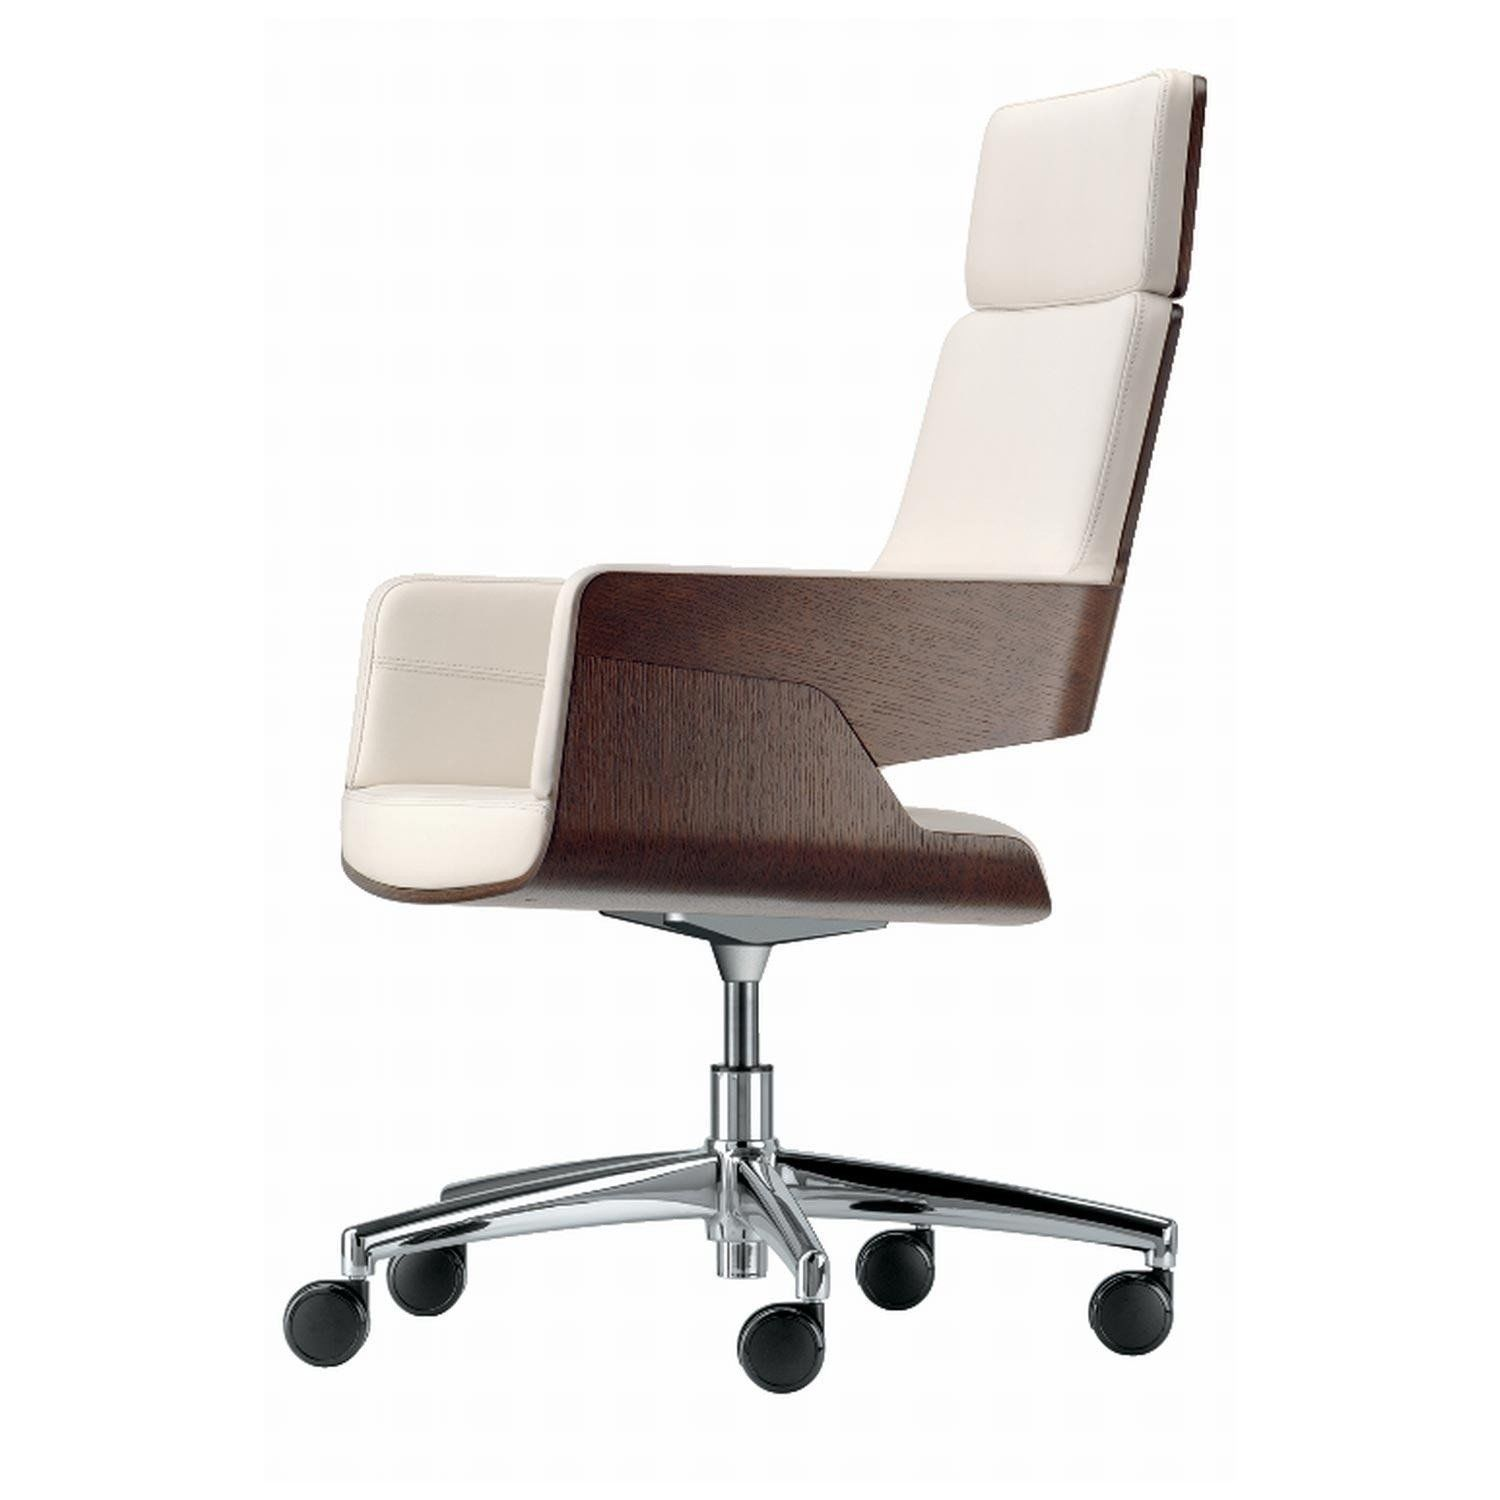 Thonet   Thonet S 845 DRWE Office Chair With Wheels   Stained Oak/leather  Linea